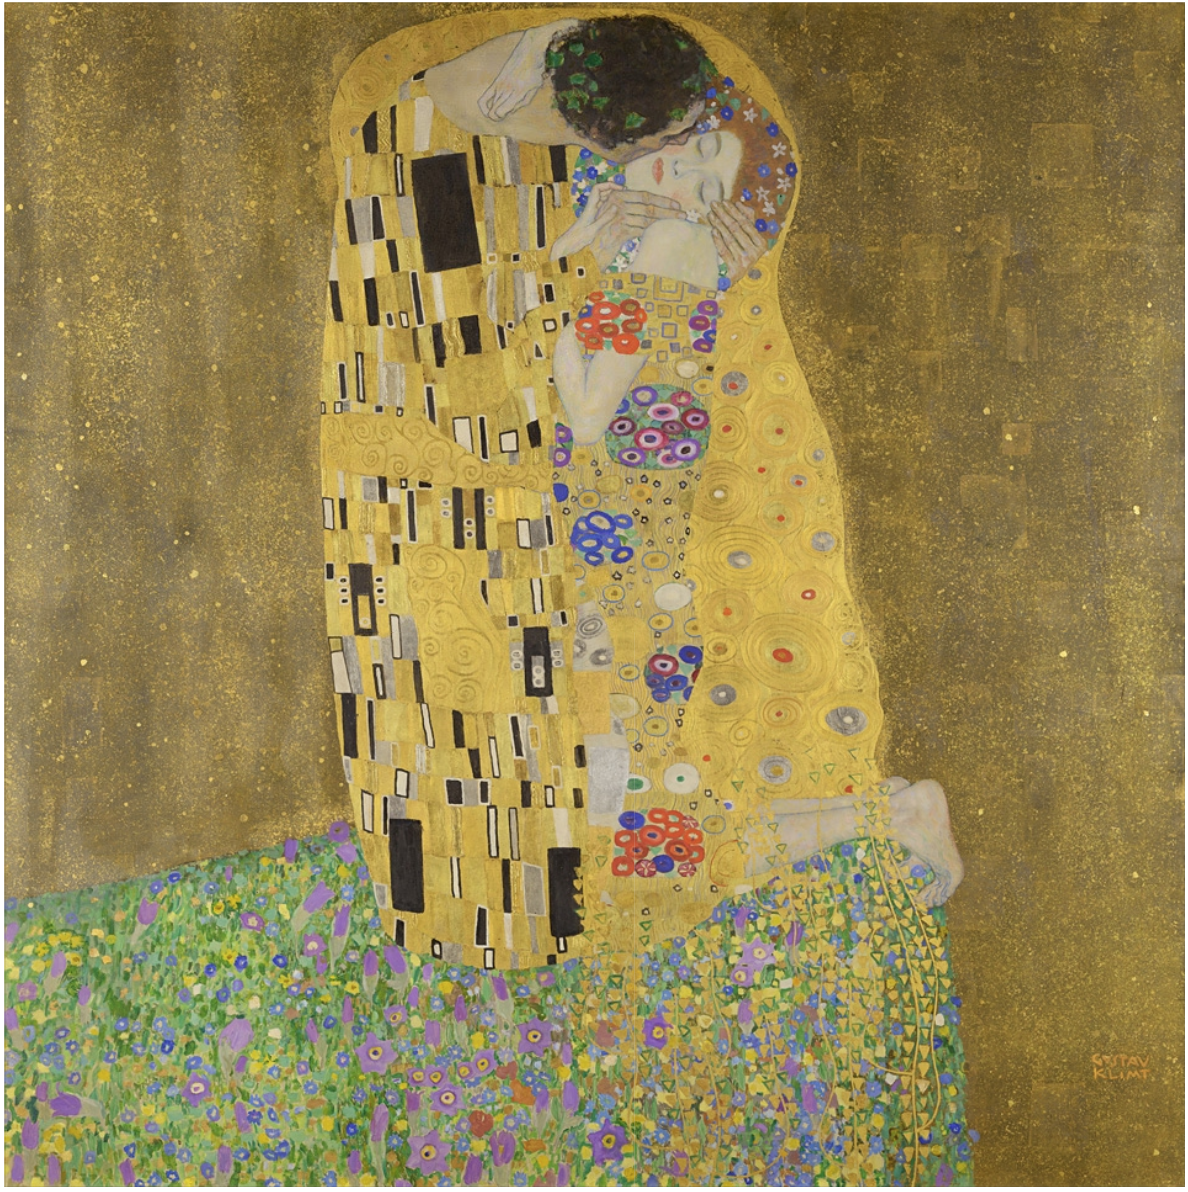 Gustav Klimt, The Kiss. Image sourced from  Google Arts & Culture